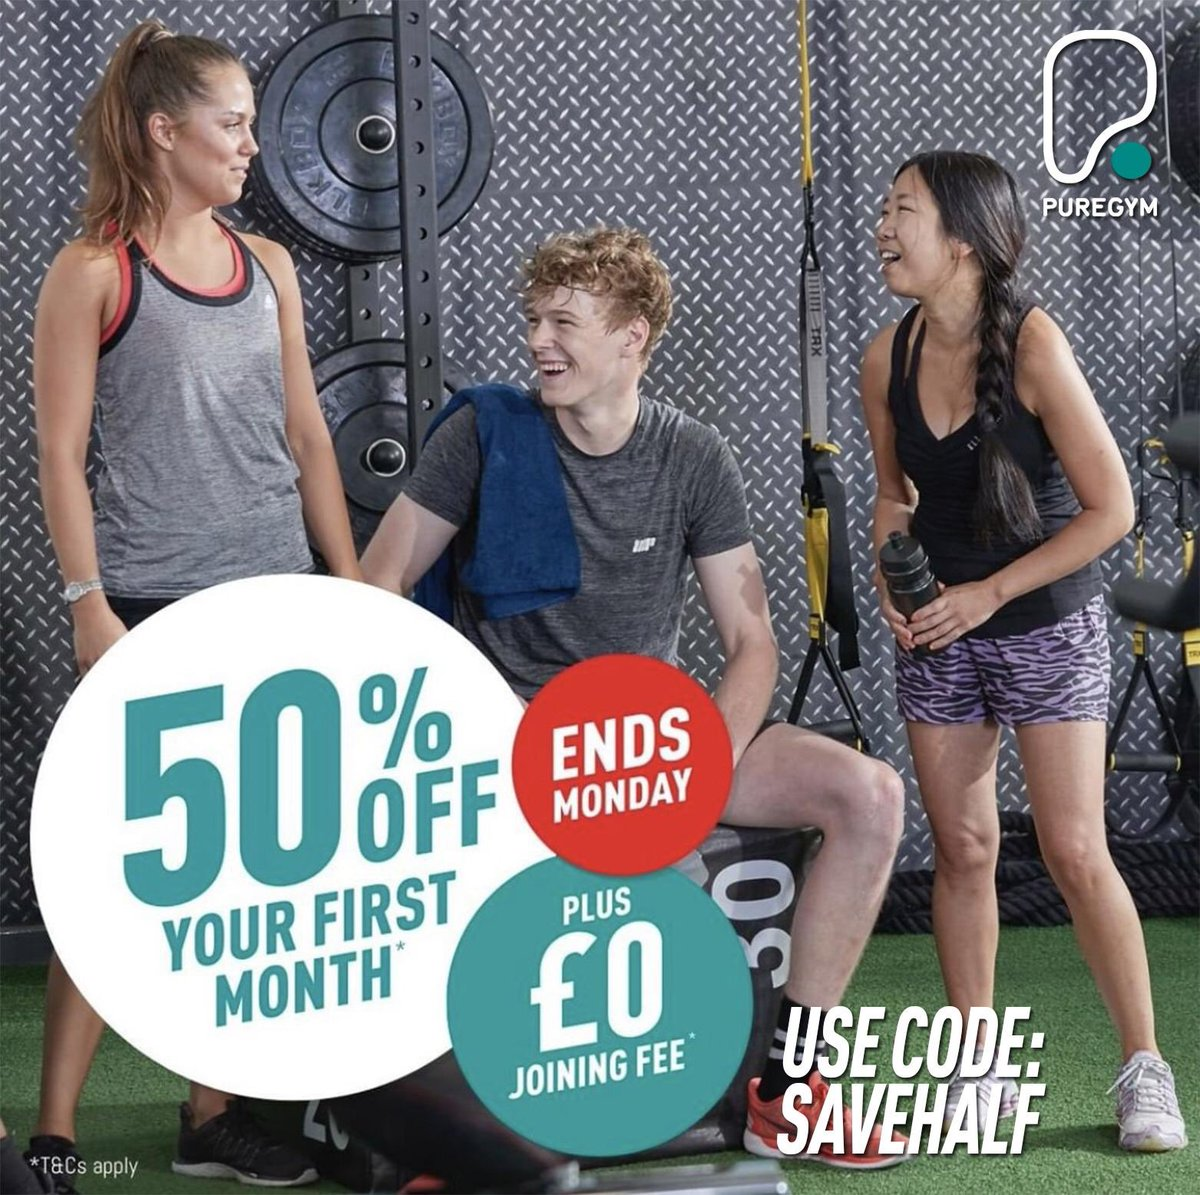 PURE GYM - LPOOL's photo on #liverpool